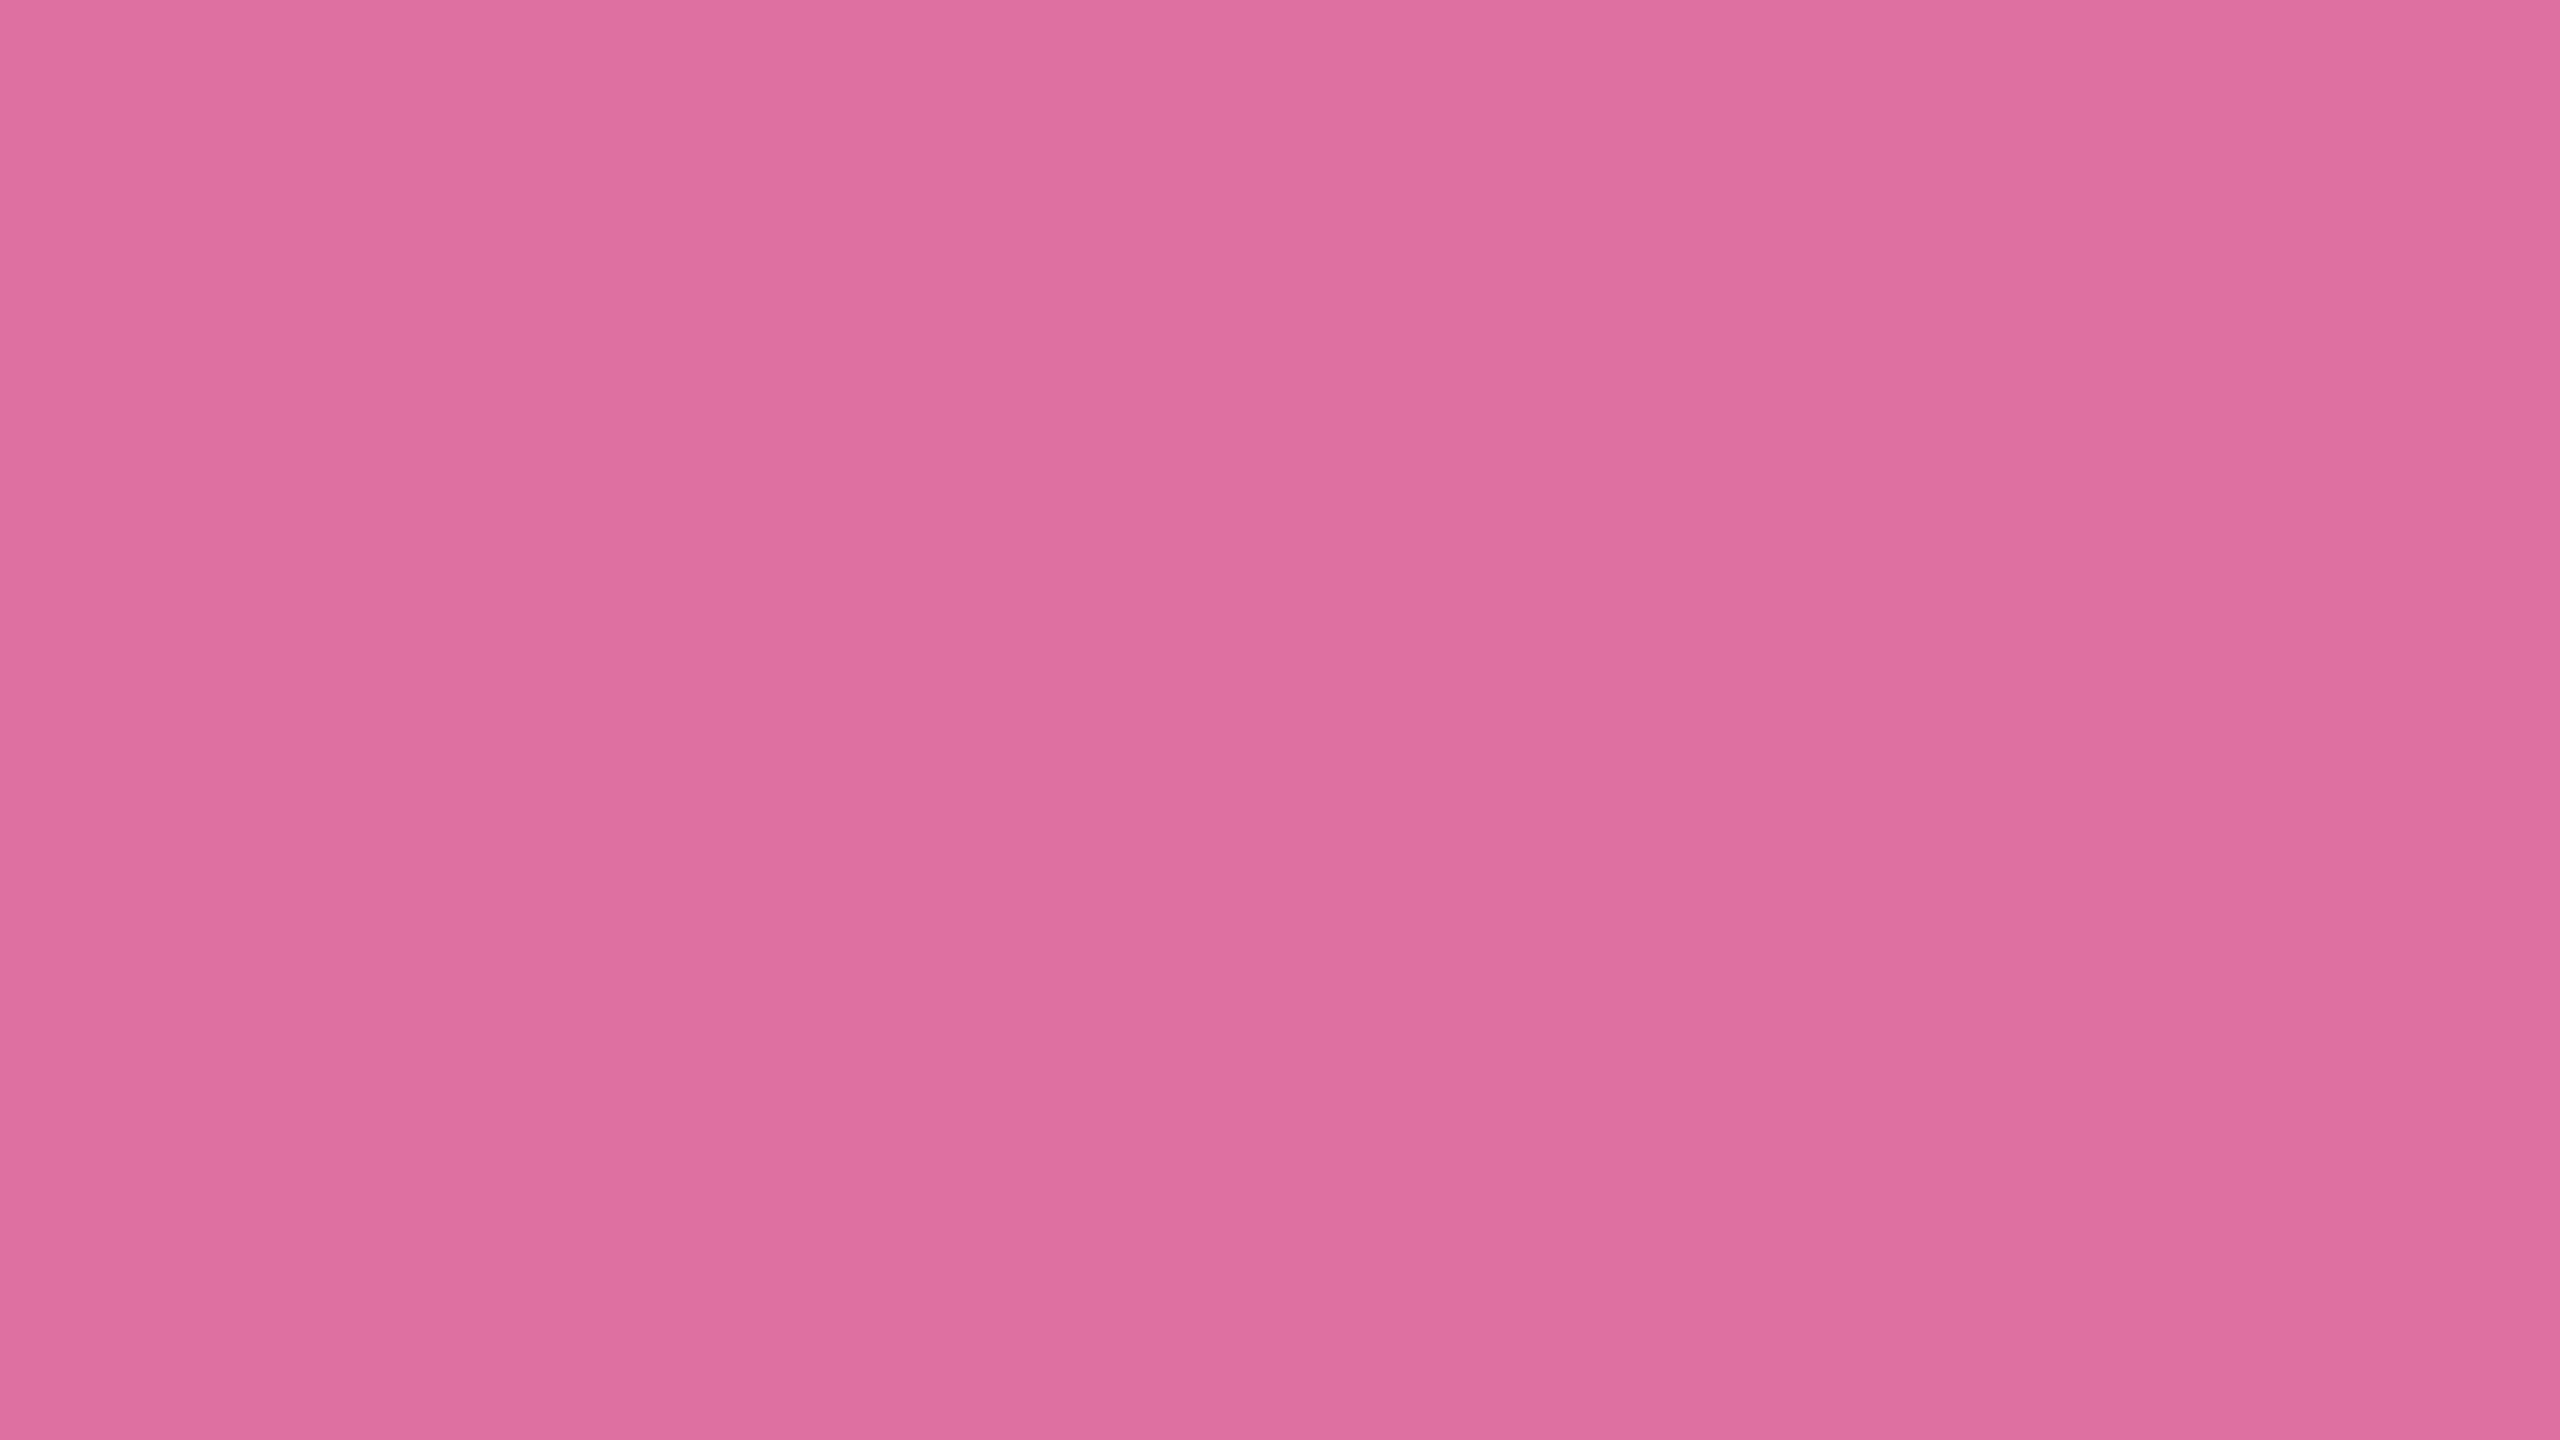 2560x1440 China Pink Solid Color Background